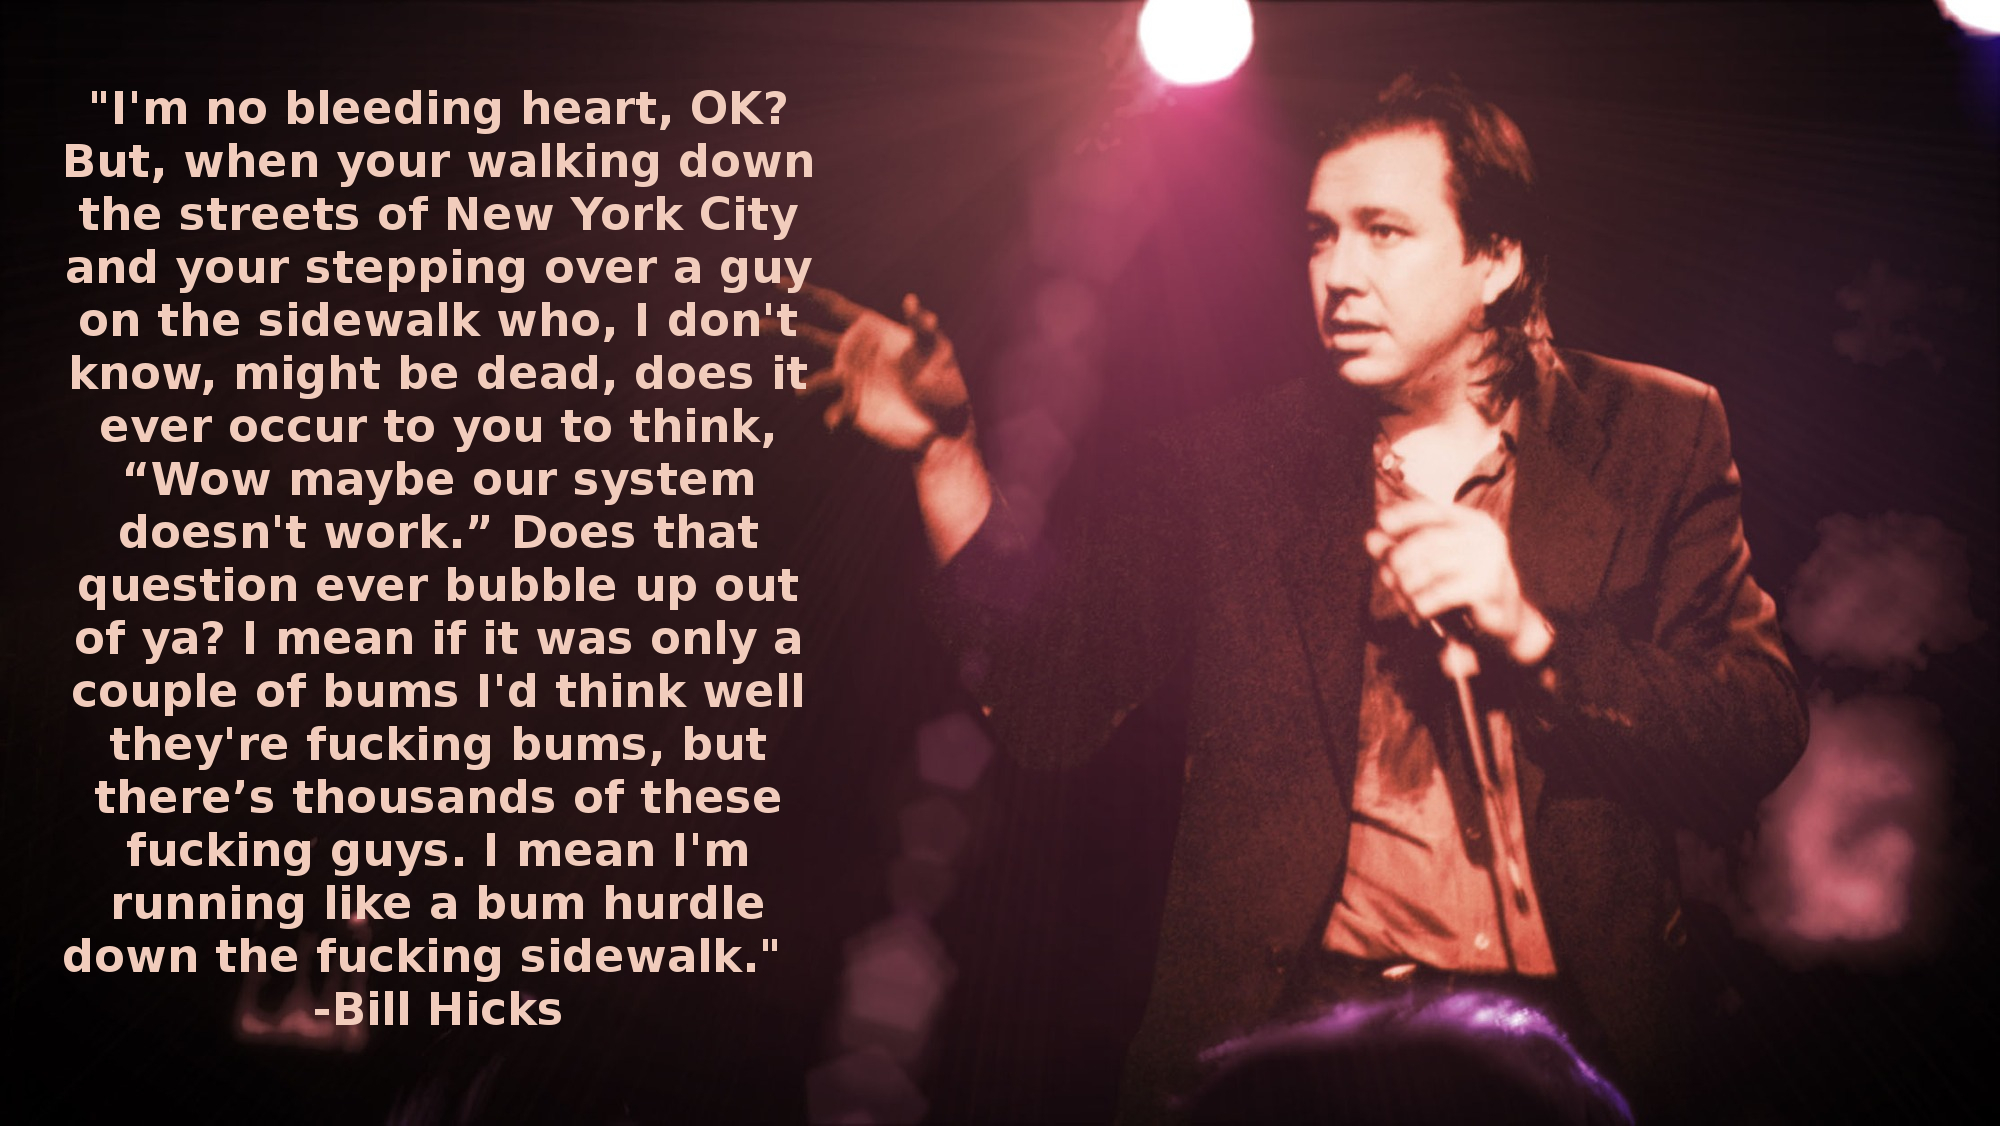 Bill Hicks - Bums are proof our system doesn't work